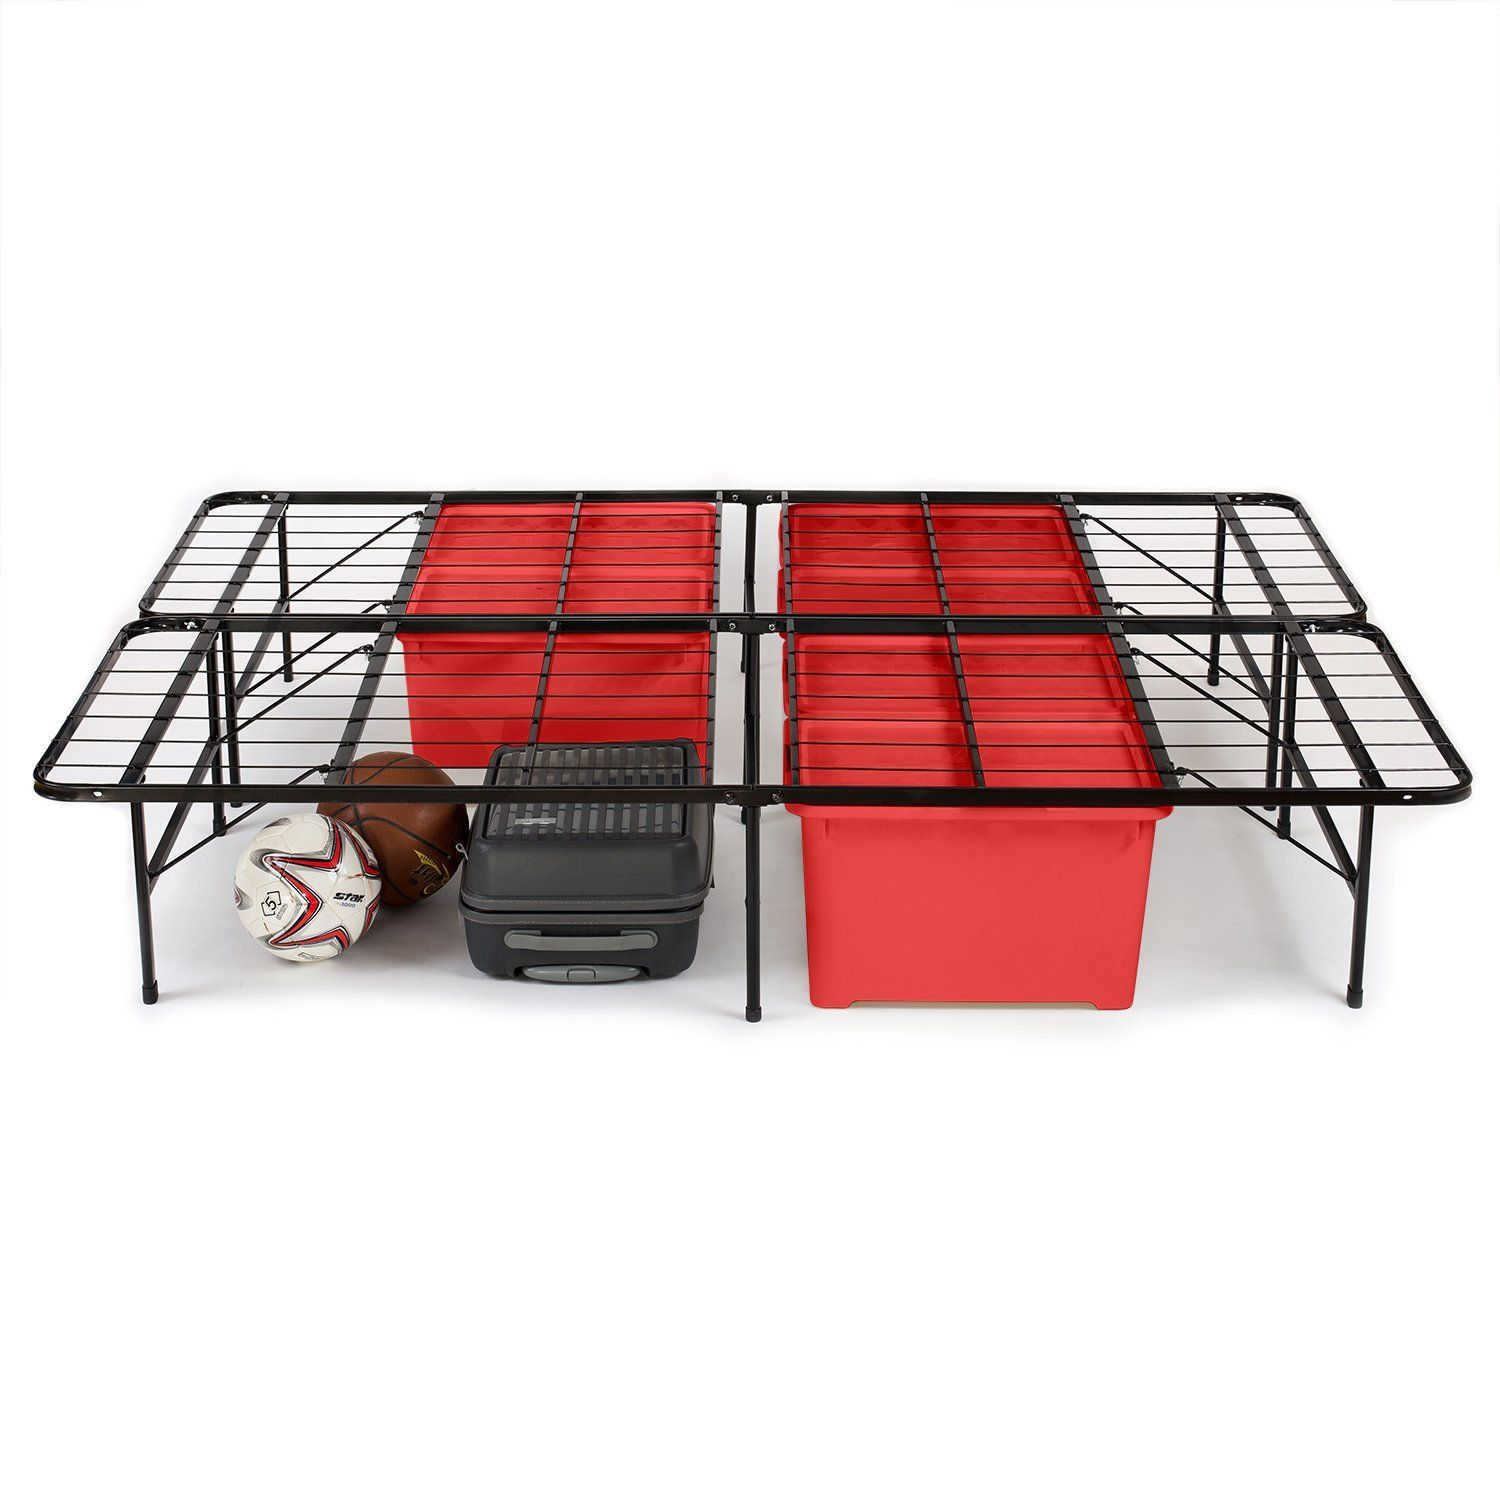 Heavy Duty King Bed Frames For Plus Size People For Big And Heavy